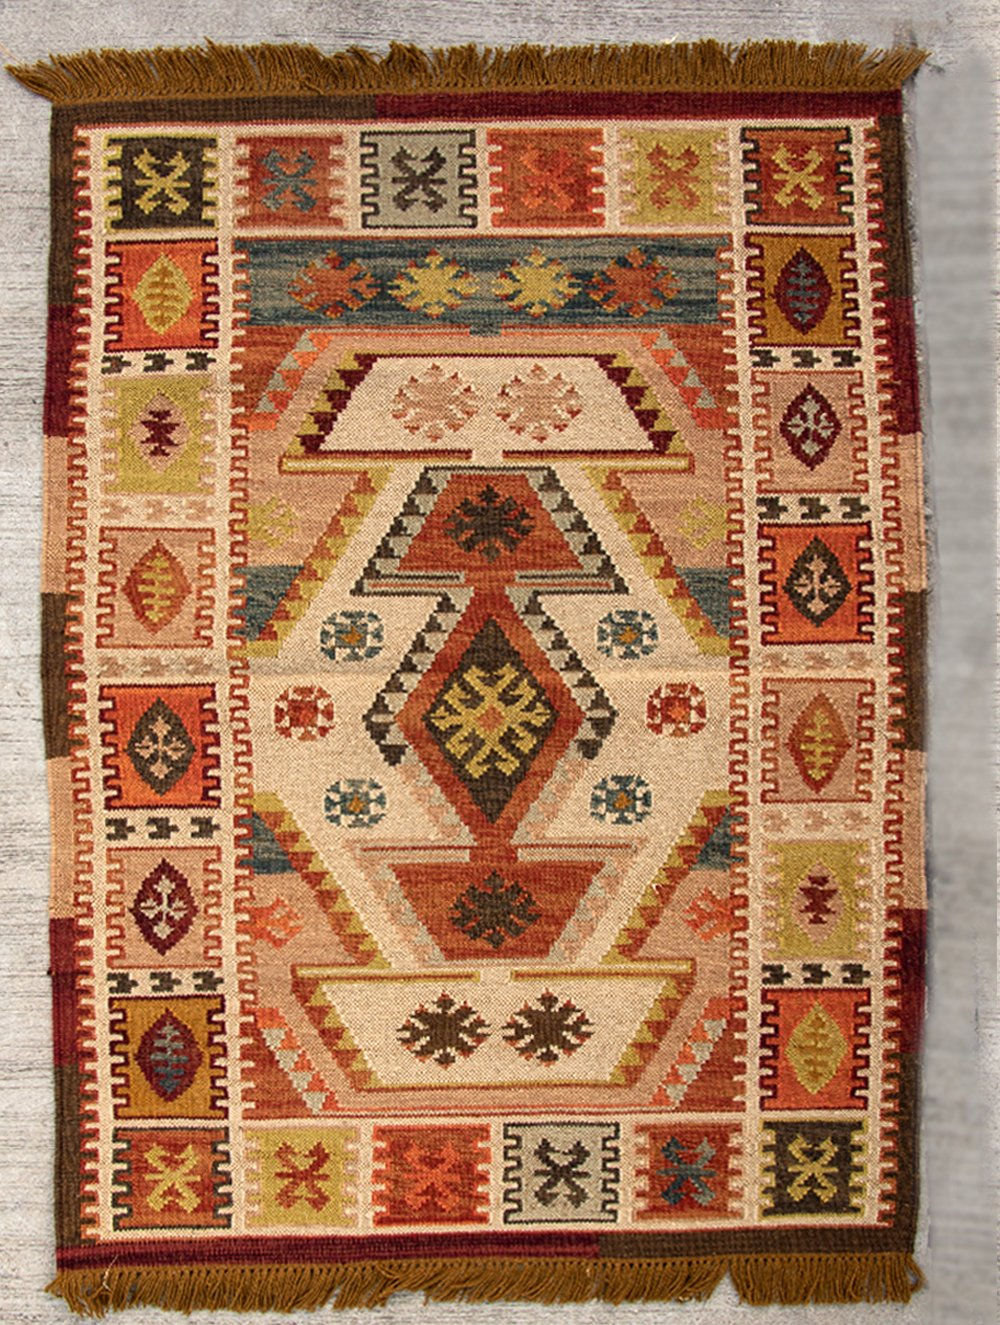 Exclusive Handwoven Kilim Rug (8 x 5 ft) - The India Craft House